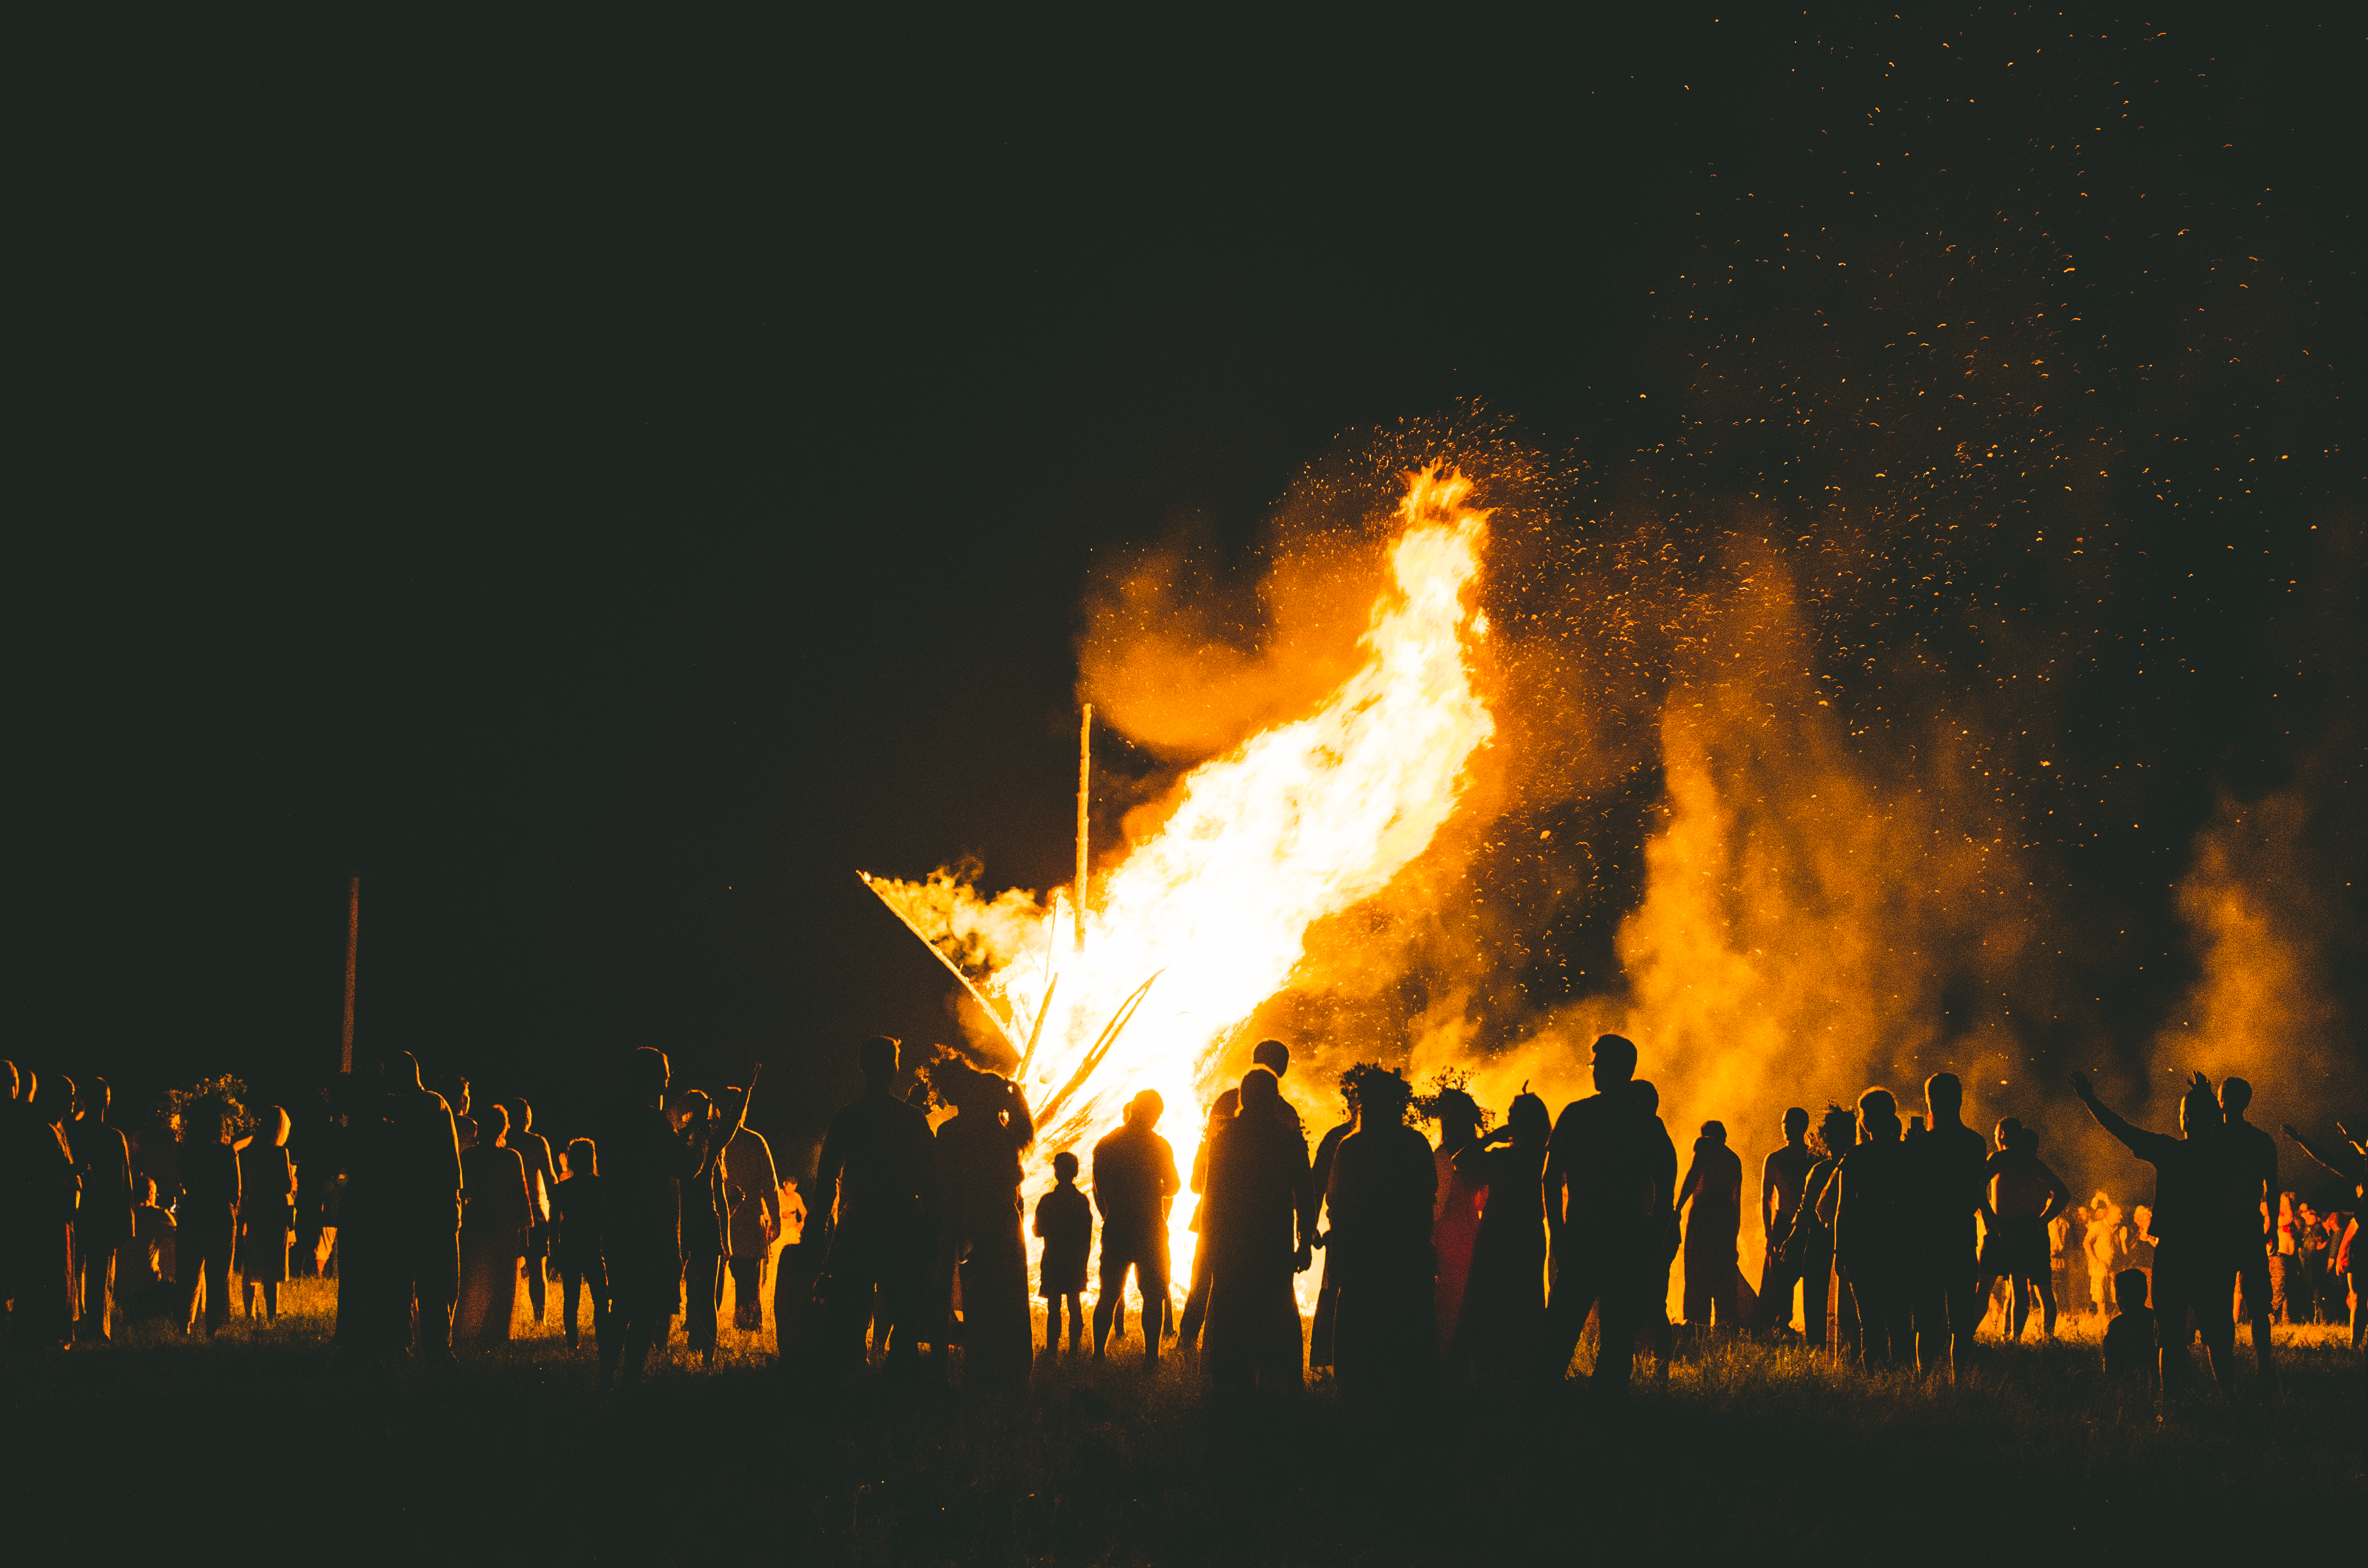 An image of a summer solstice celebration on the outskirts of Kaluga, Russia, by Vidgestr.